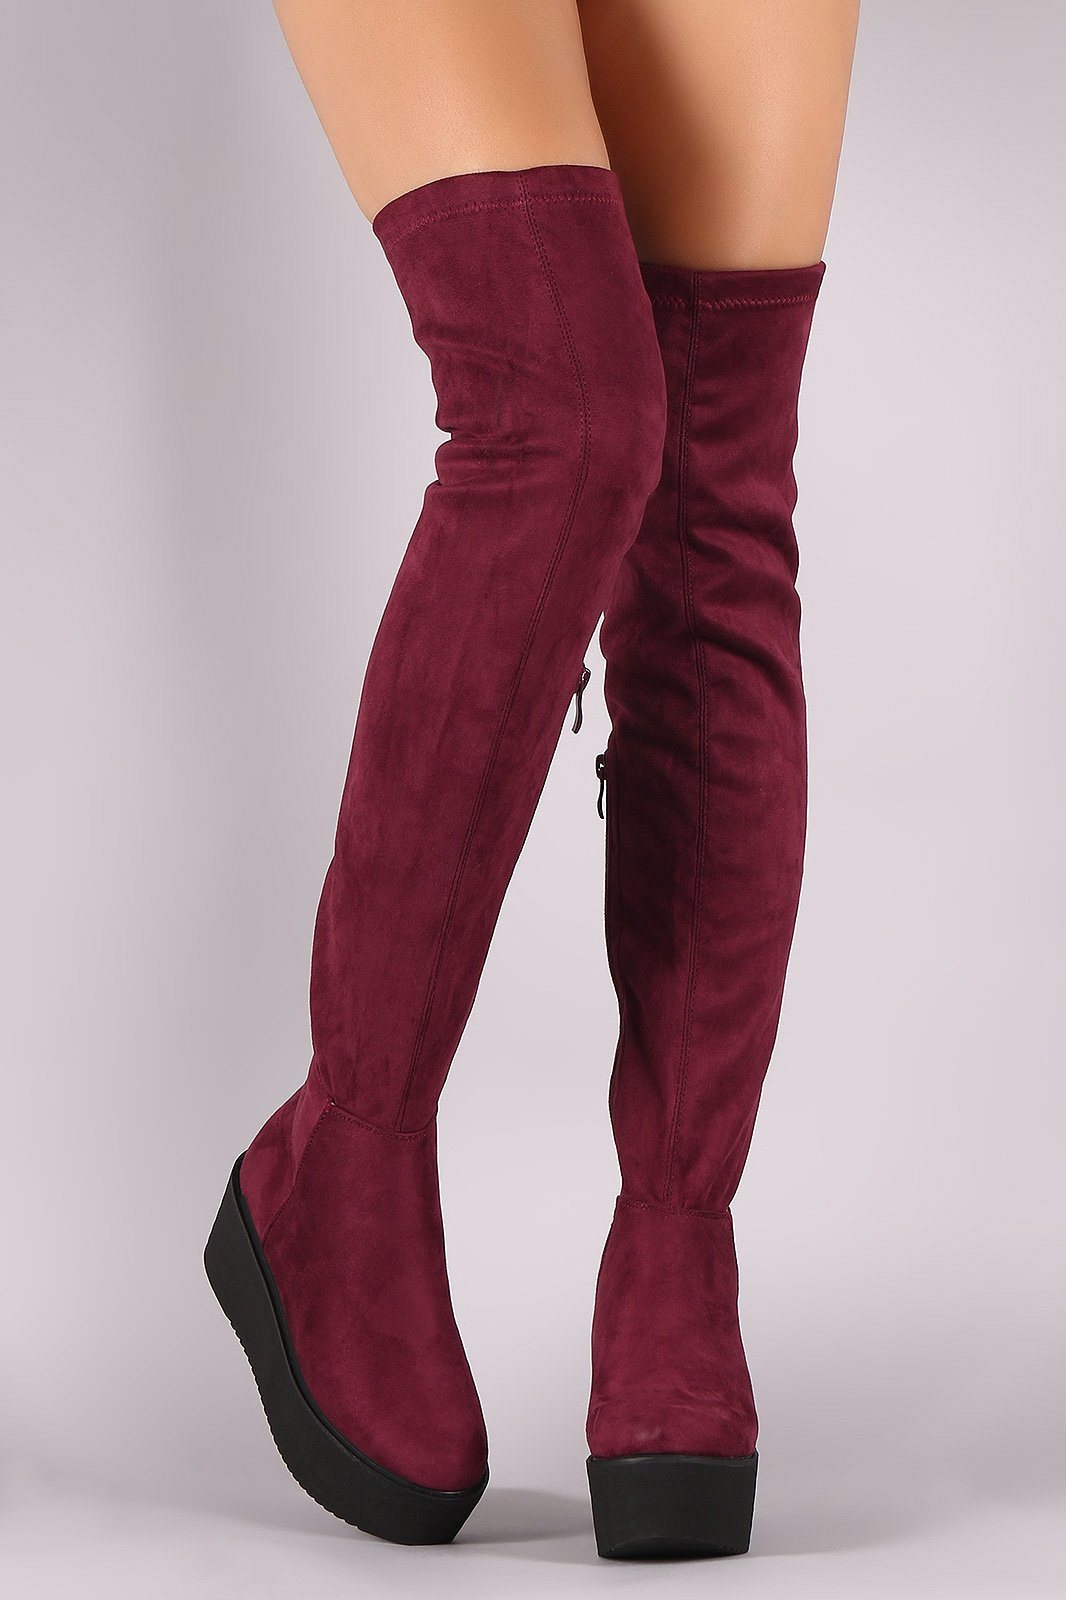 c692b4462 Faux Suede Thigh High Lug Sole Flatform Boots – Great Daily Bargains